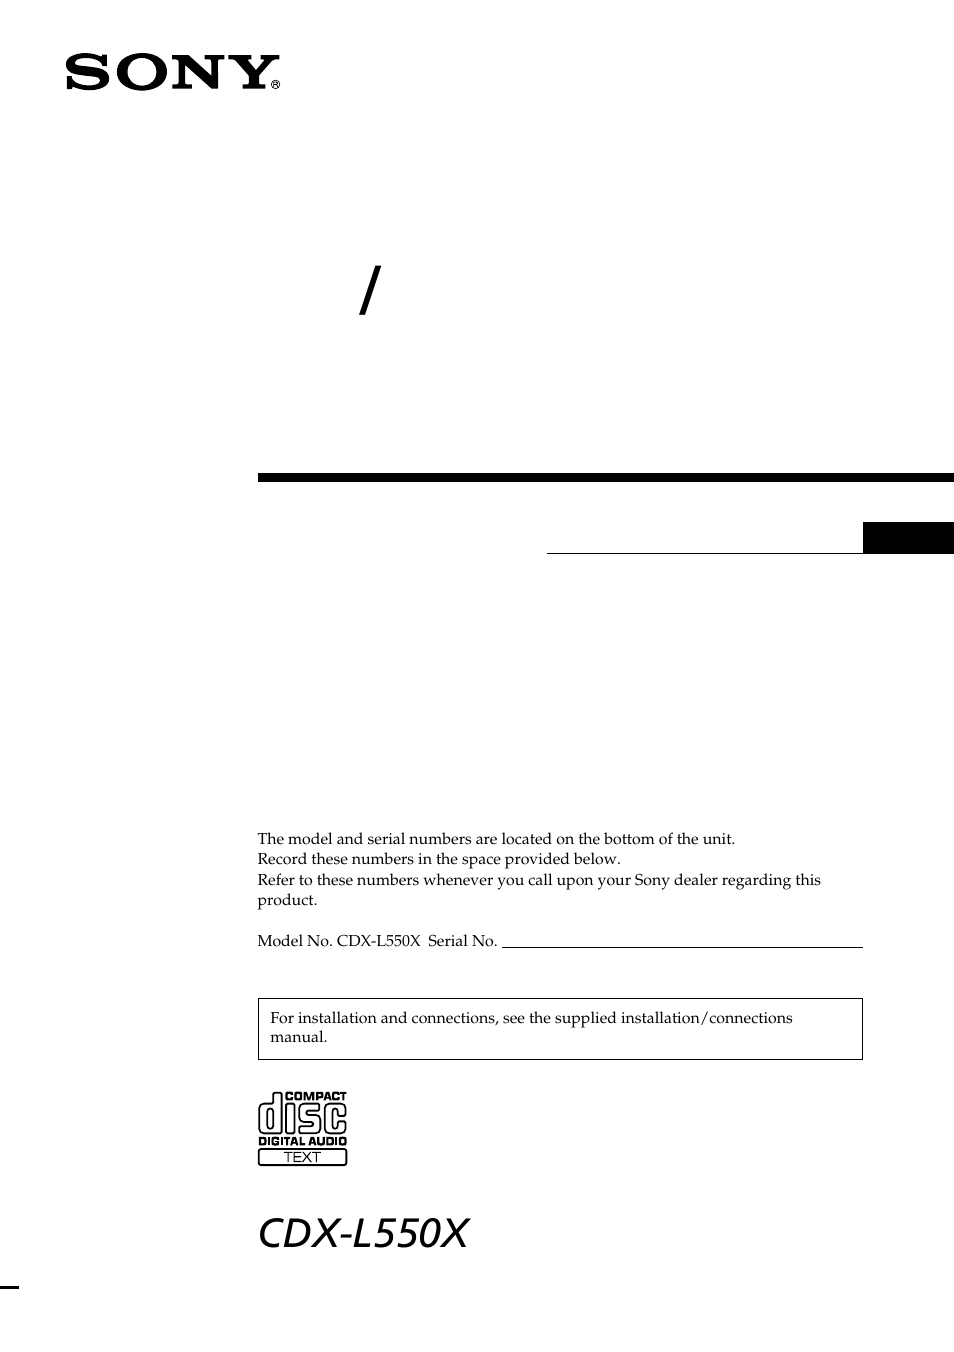 medium resolution of sony cdx l550x en user manual 24 pages also for cdx l550x cdx l550fp